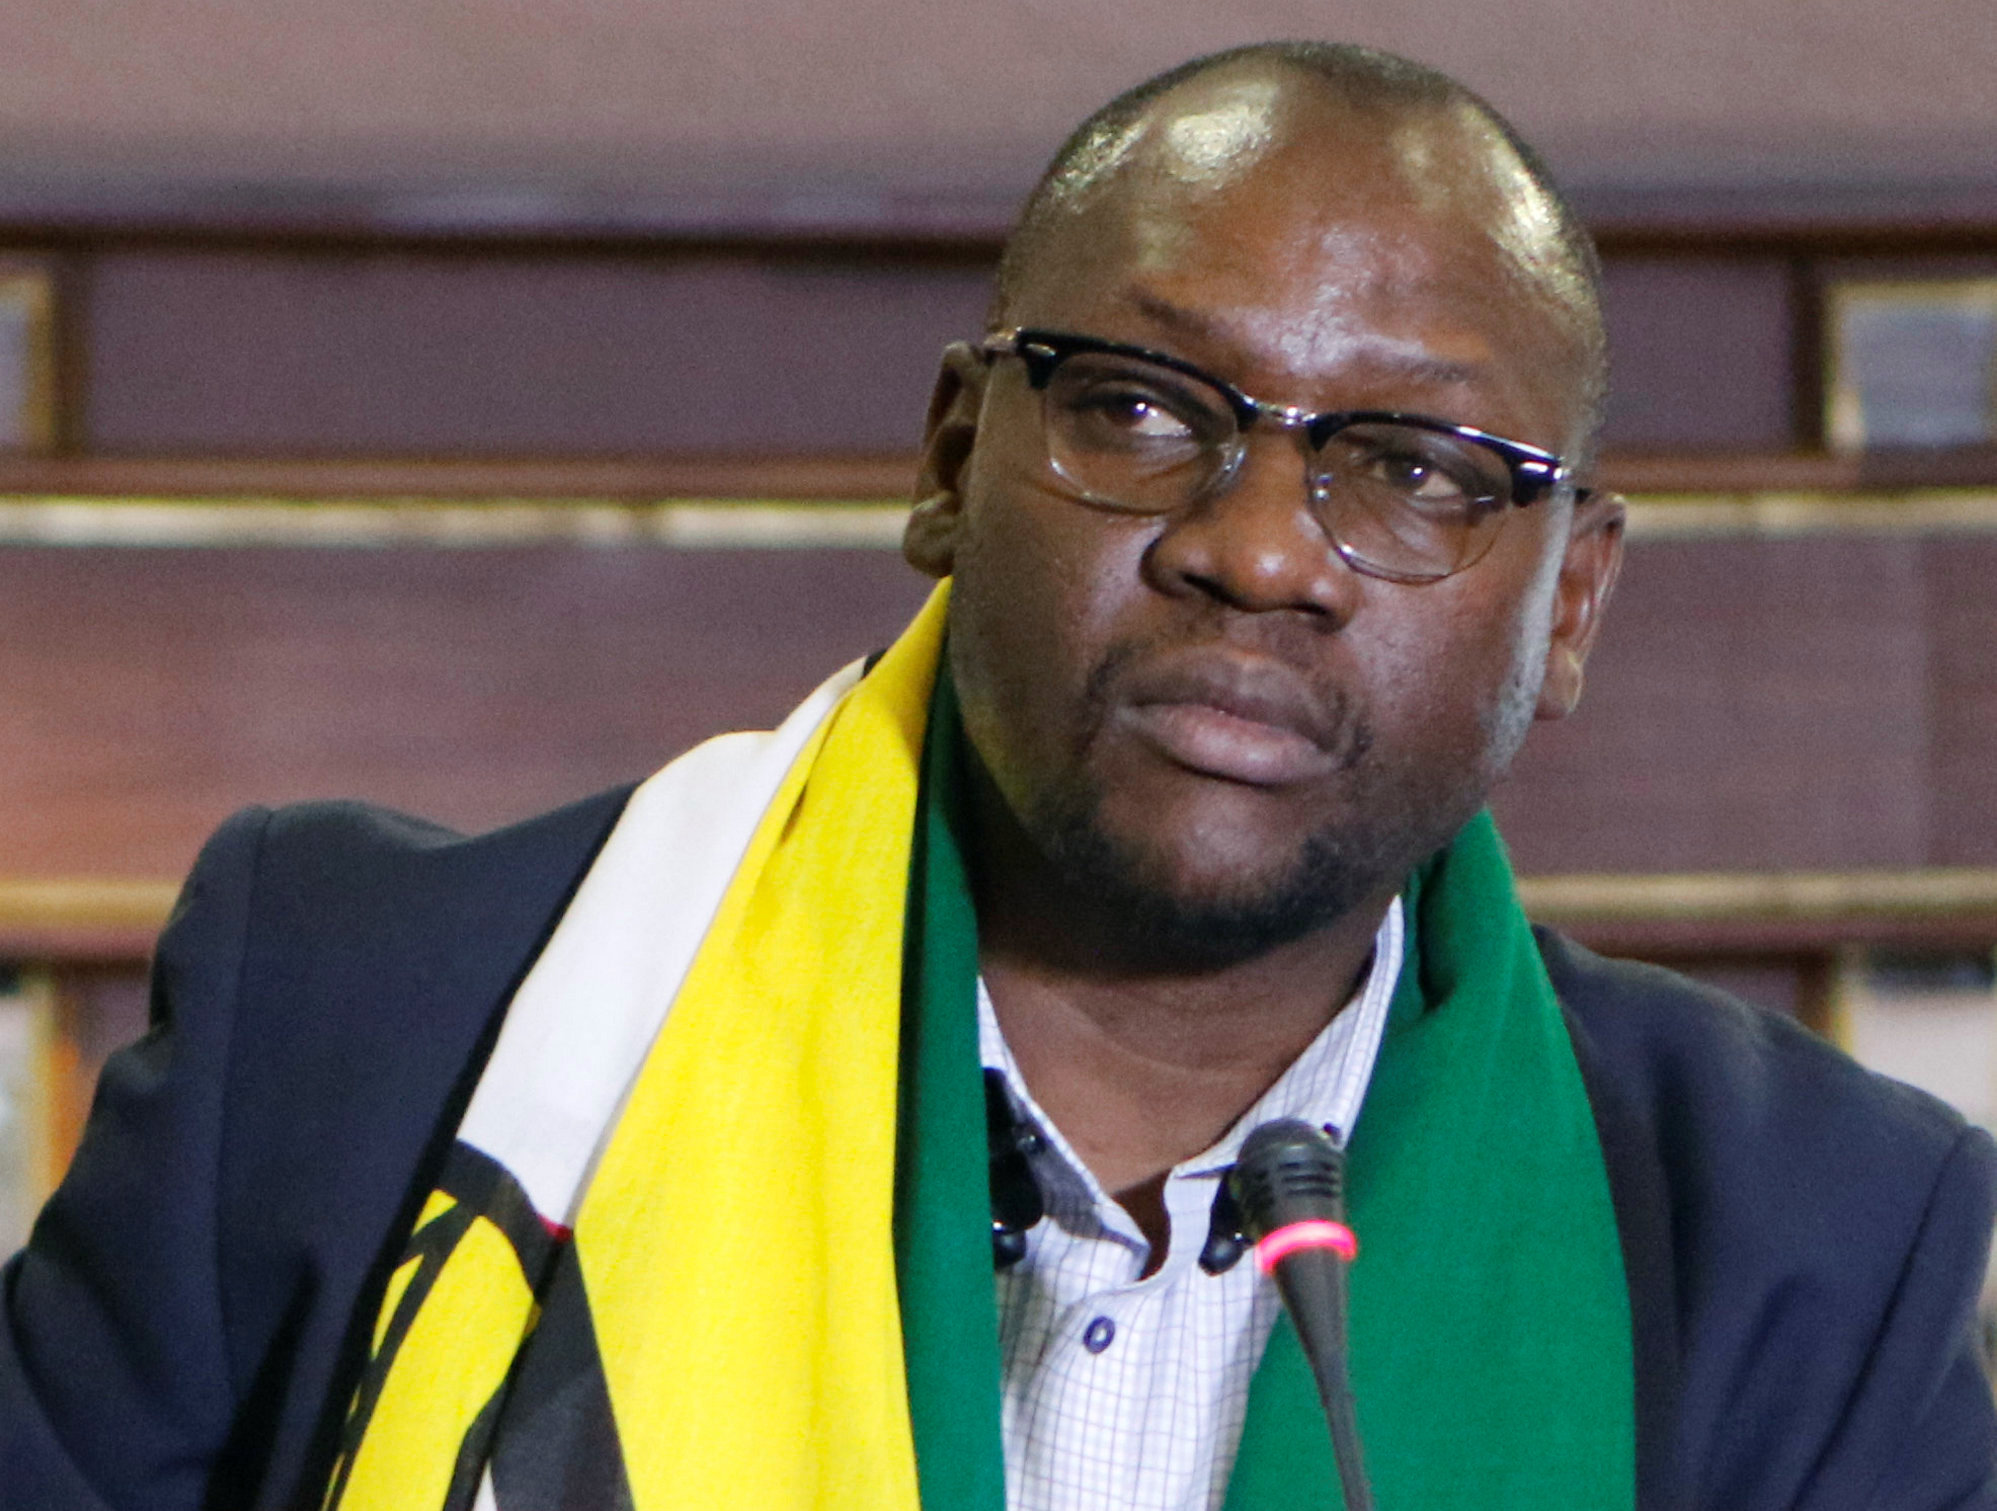 Pastor Evan Mawarire, who launched the movement #ThisFlag, is seen at a press conference in Harare